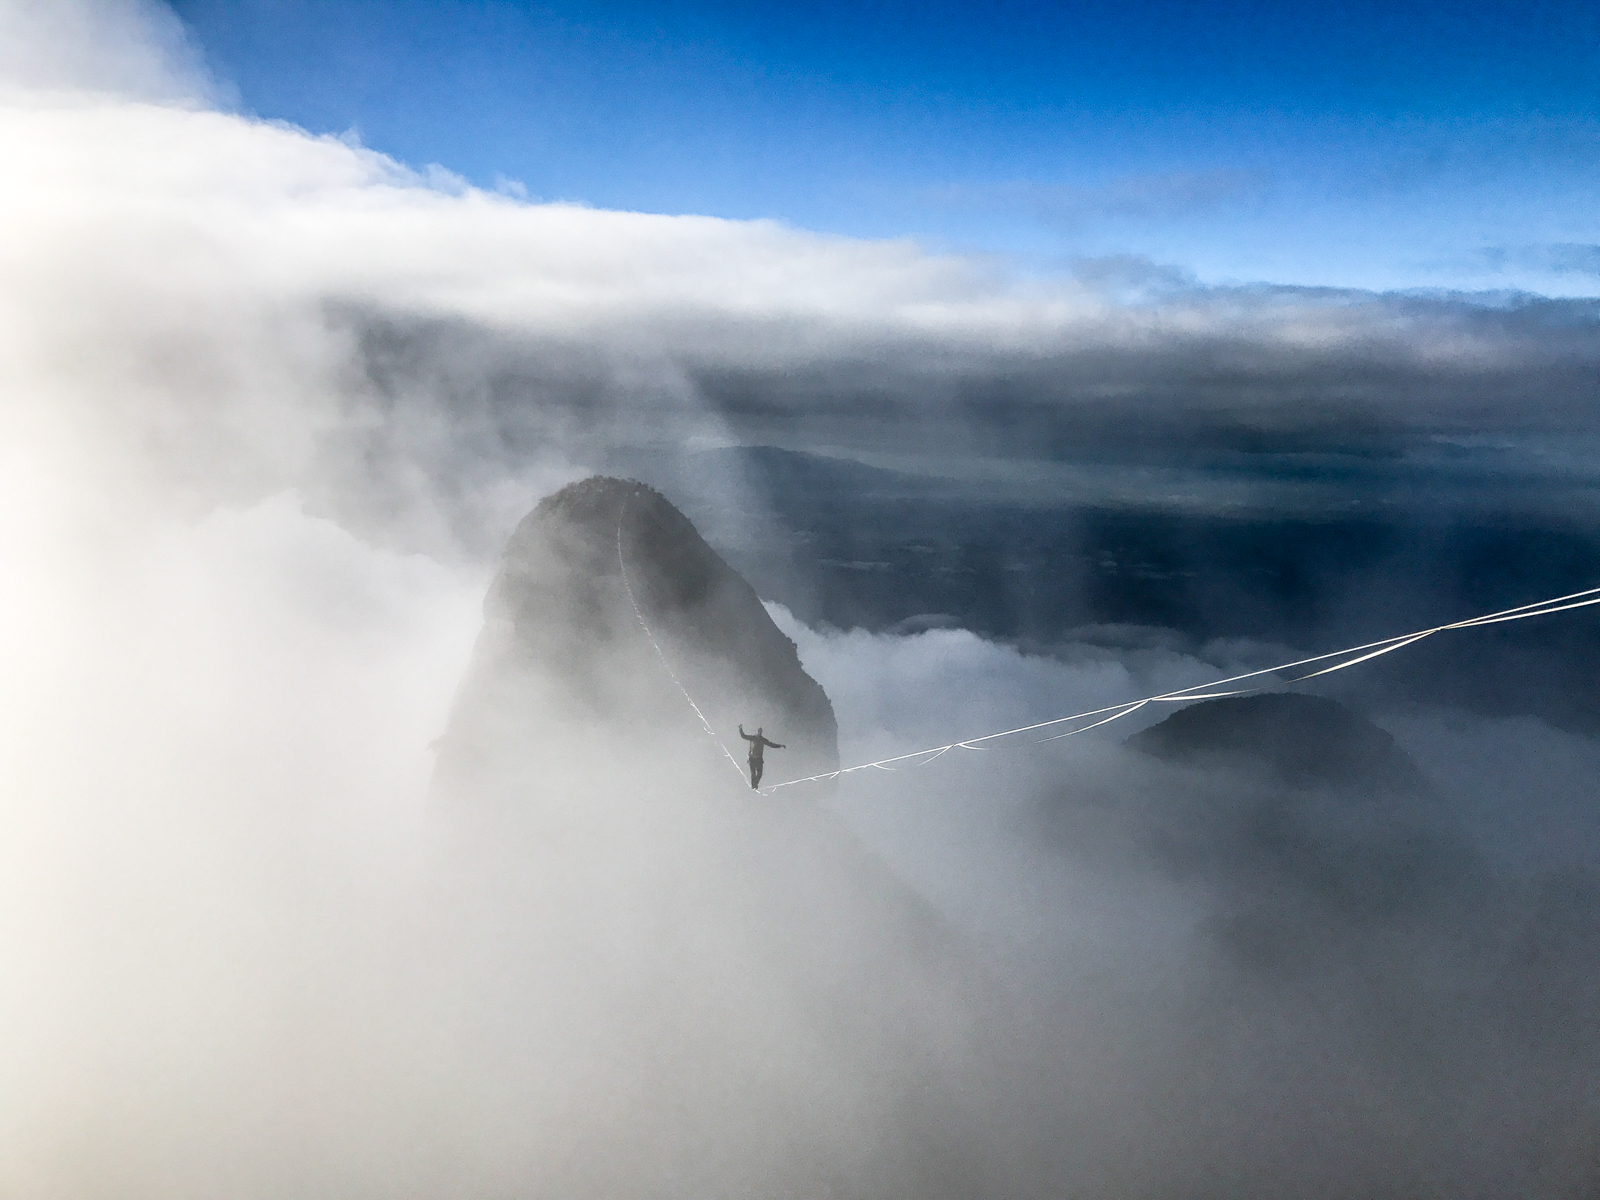 WALKING THROUGH THE CLOUDS WITH RYAN ROBINSON